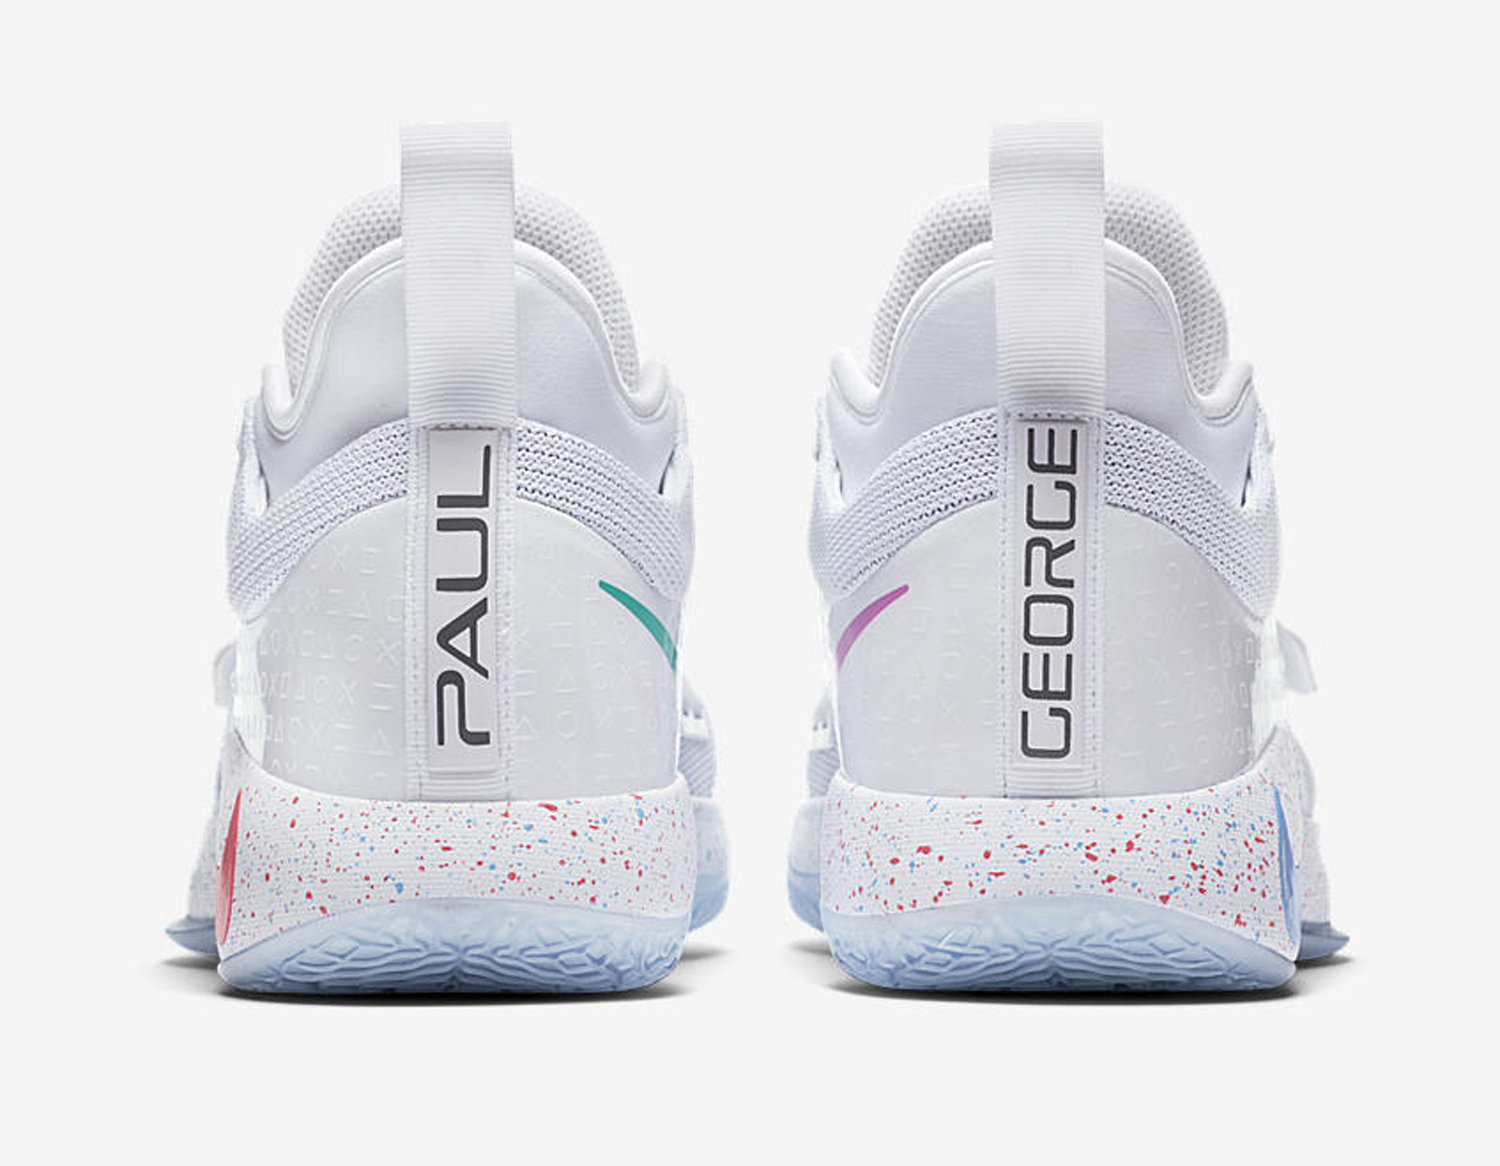 promo code 234d3 56bae Yet Another Playstation Nike PG 2.5 Surfaces Online ...